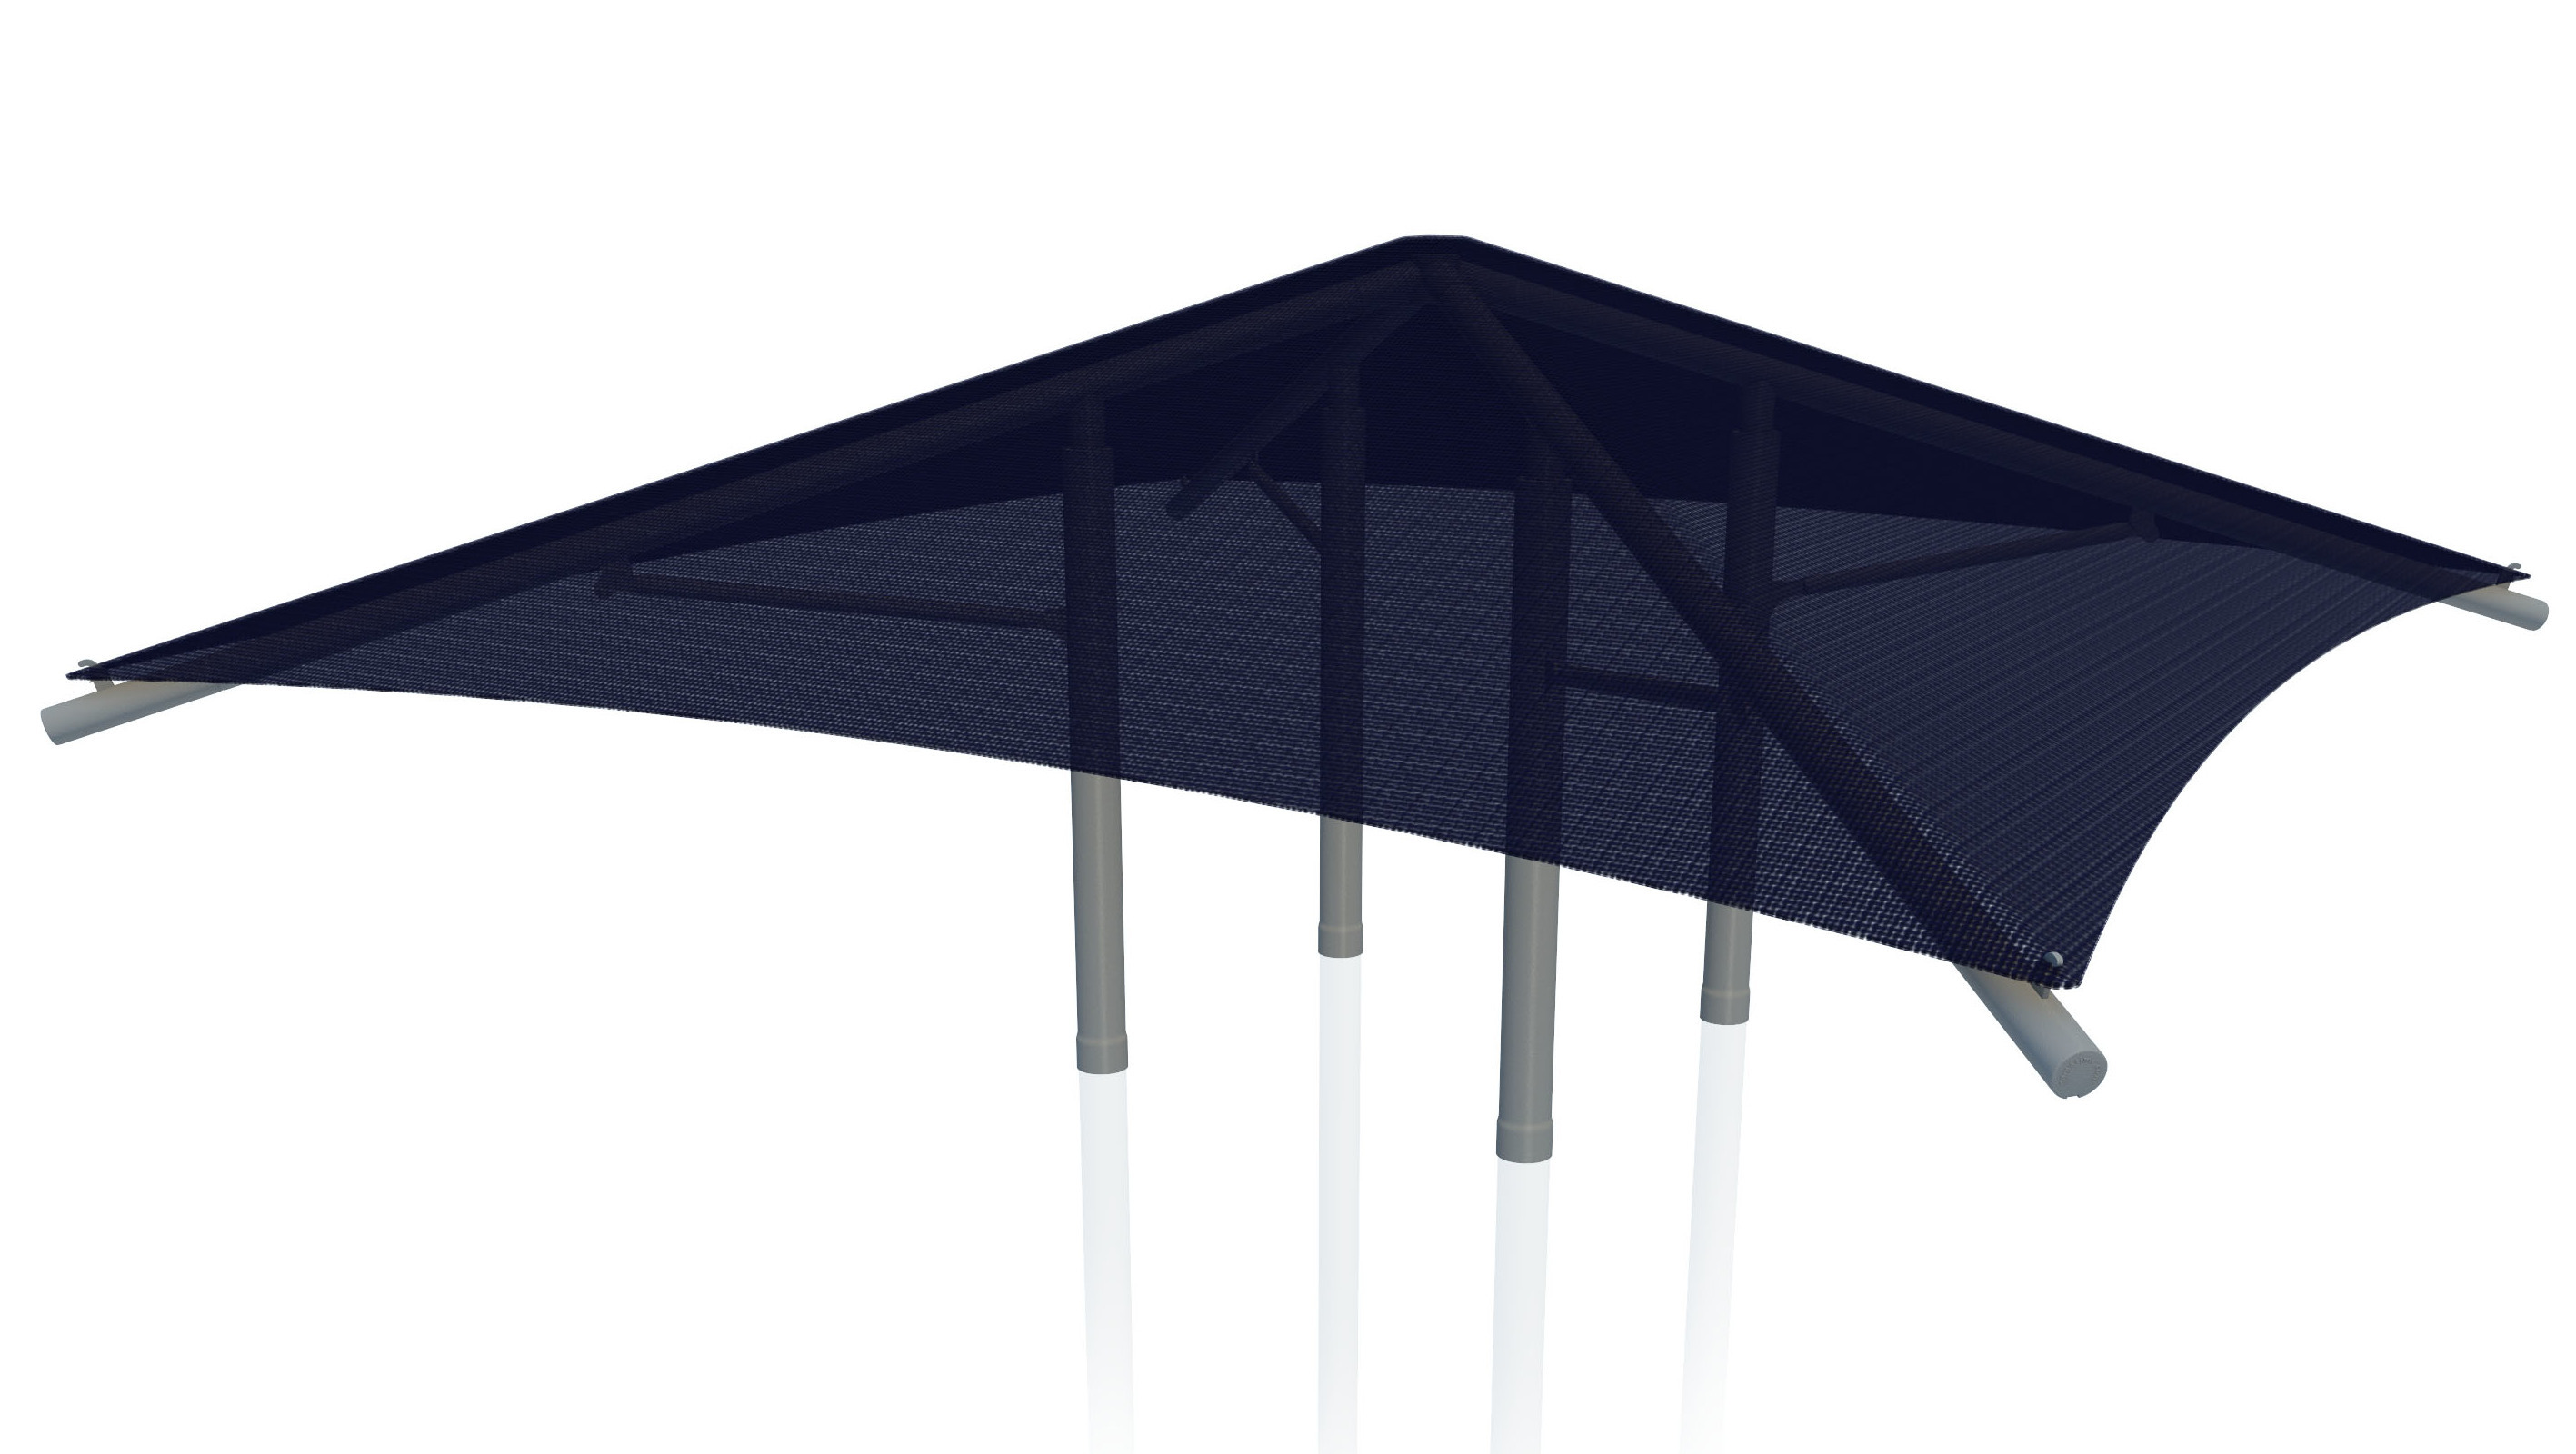 Square Canopy